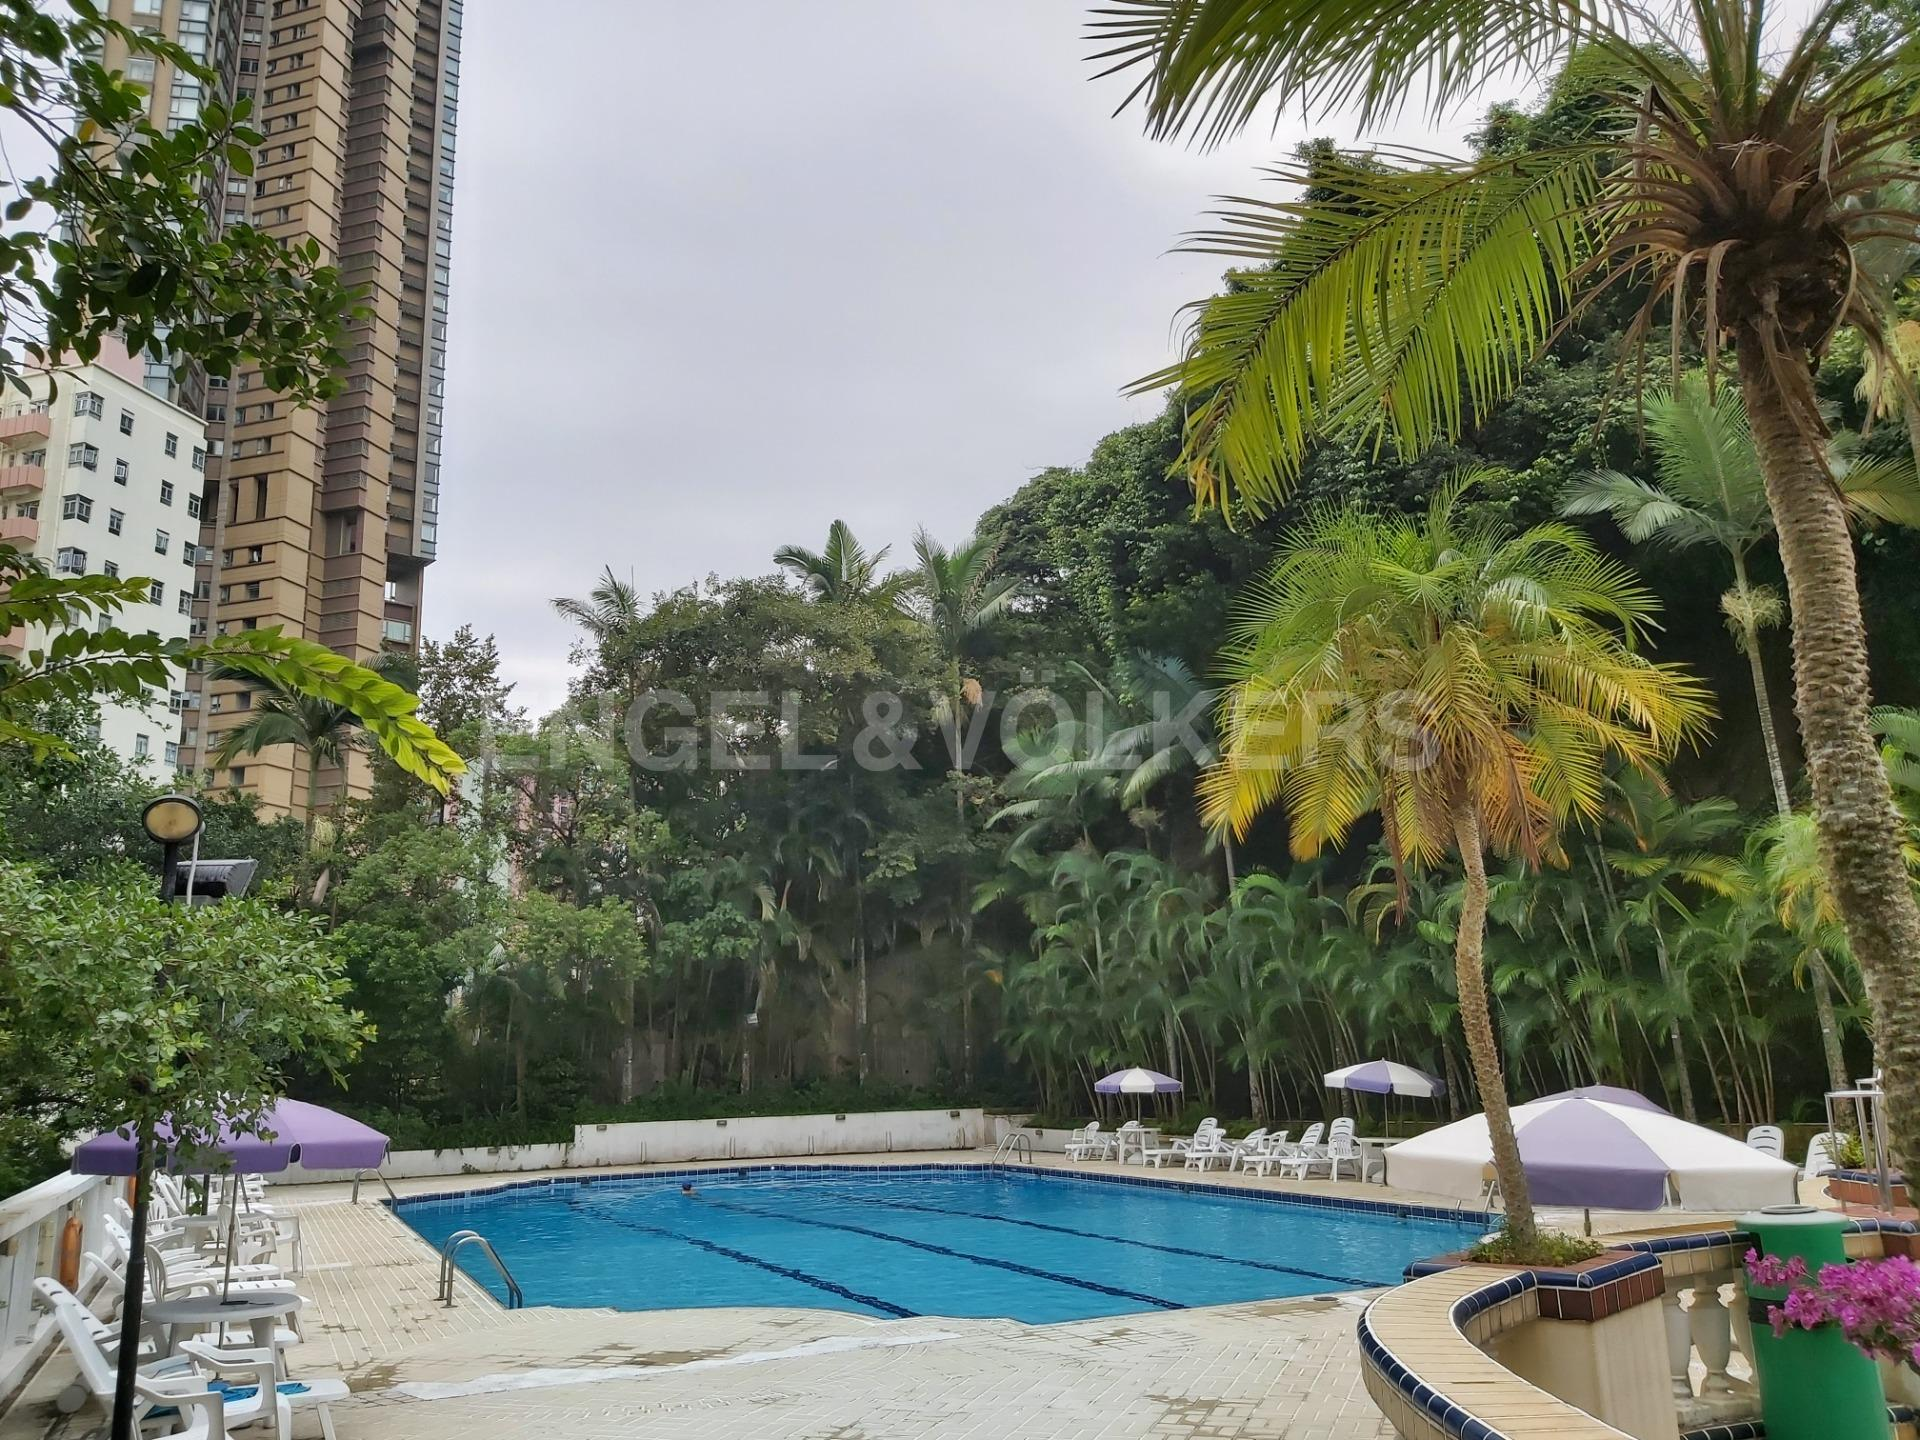 Apartment in Mid Level West / Pok Fu Lam - REALTY GARDENS 聯邦花園